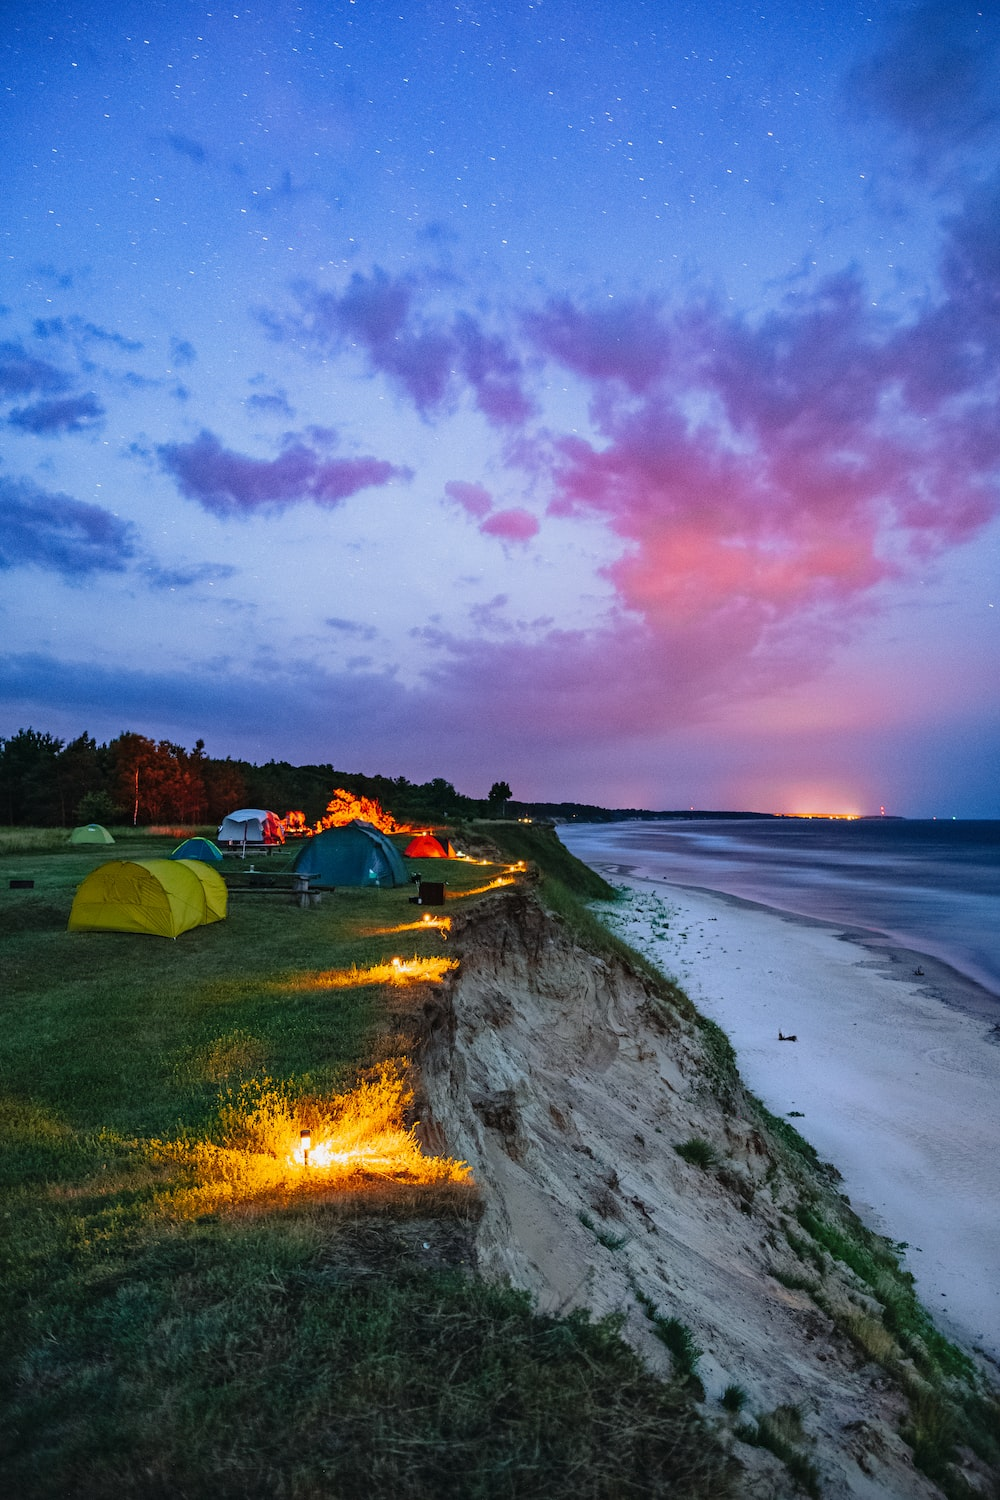 green tent on seashore during sunset